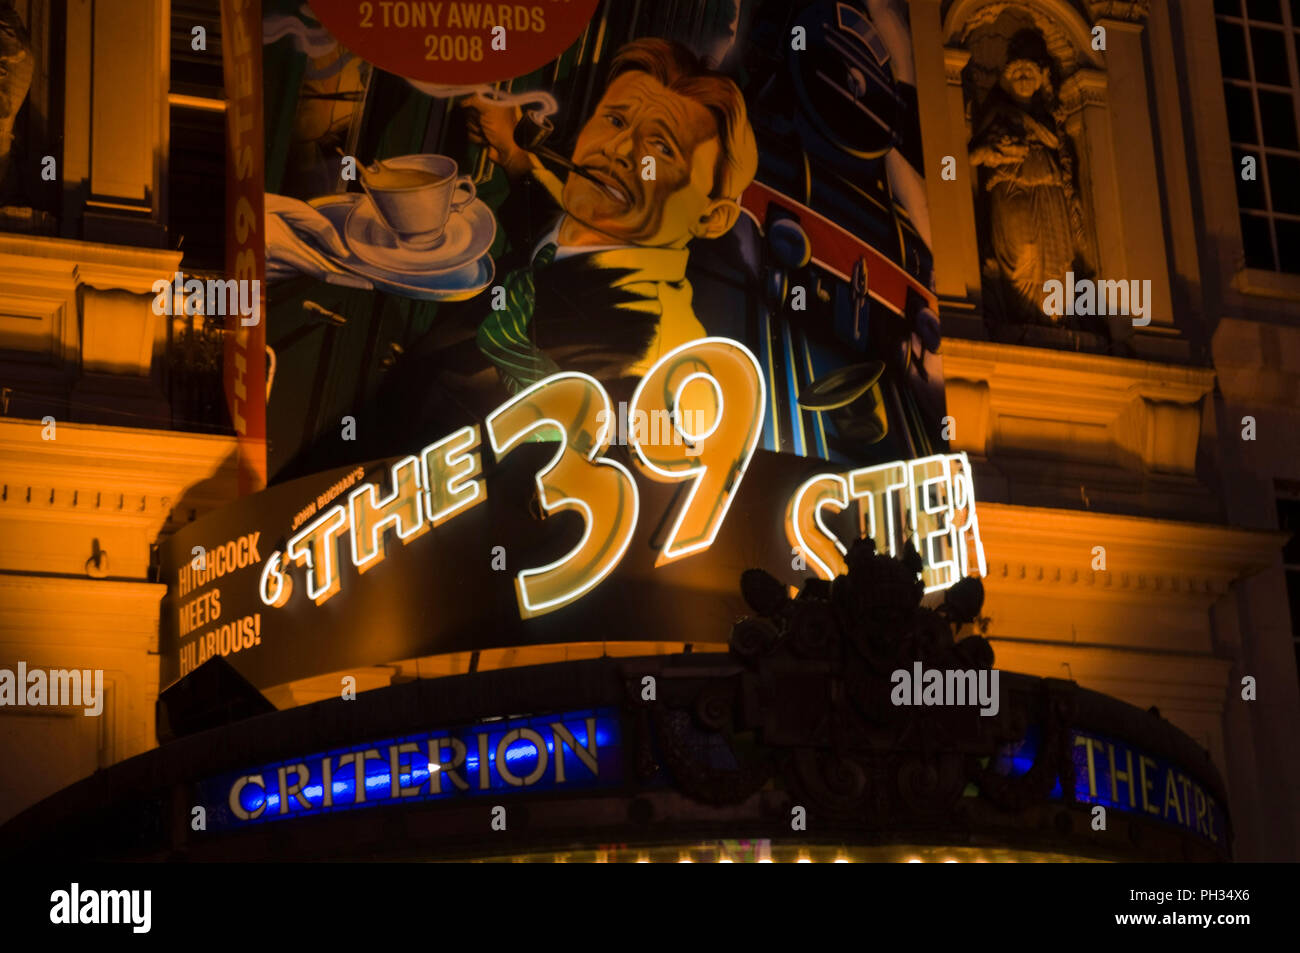 Advertisement for The 39 Steps, Criterion Theatre London UK - Stock Image